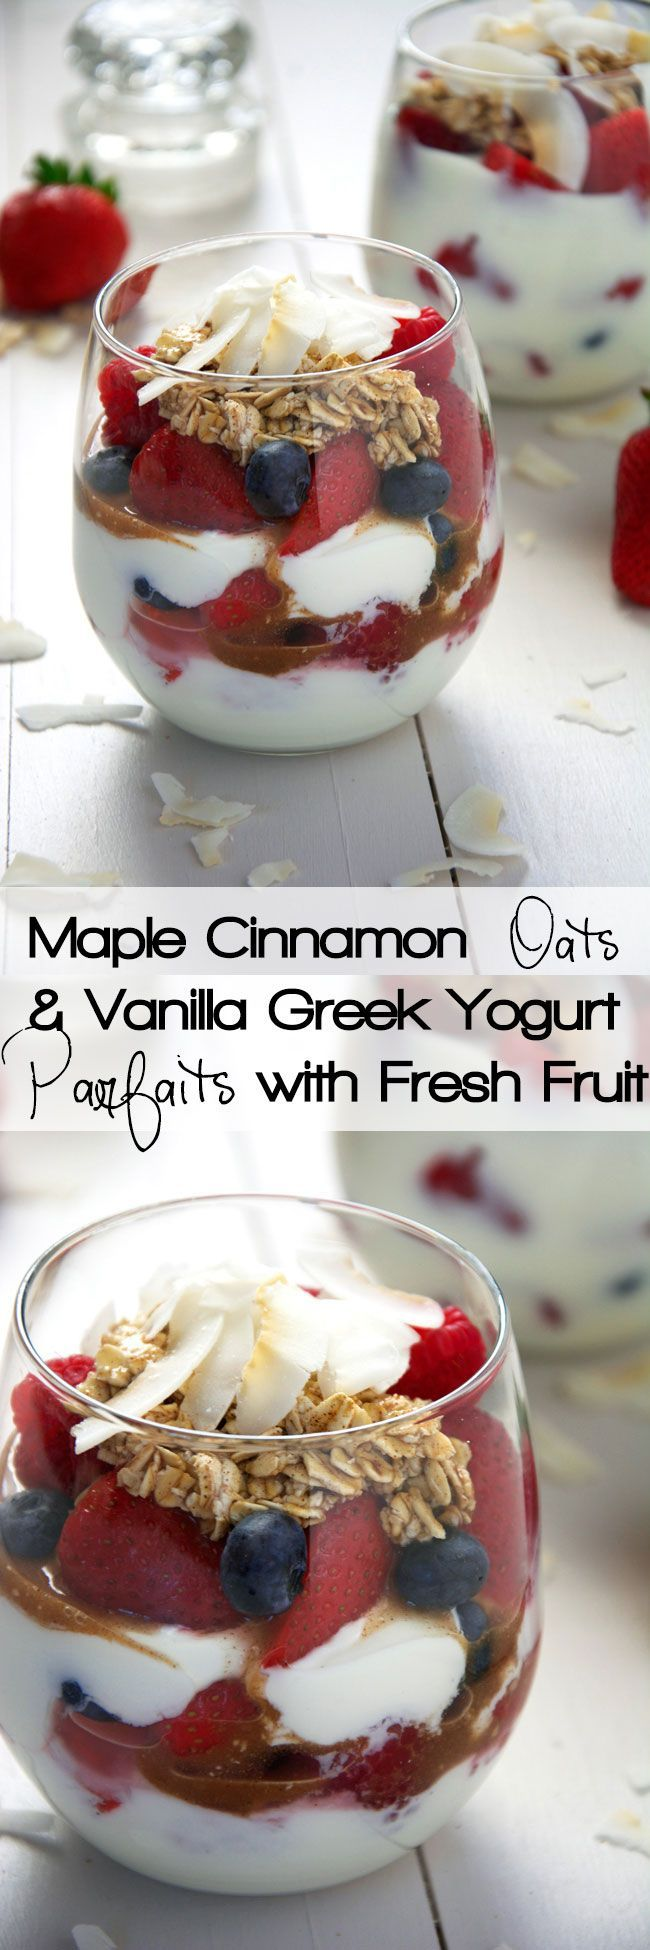 Fresh fruit, cookie dough like maple and cinnamon oats with creamy vanilla yogurt makes this parfait a simple make ahead, no brainer breakfast!